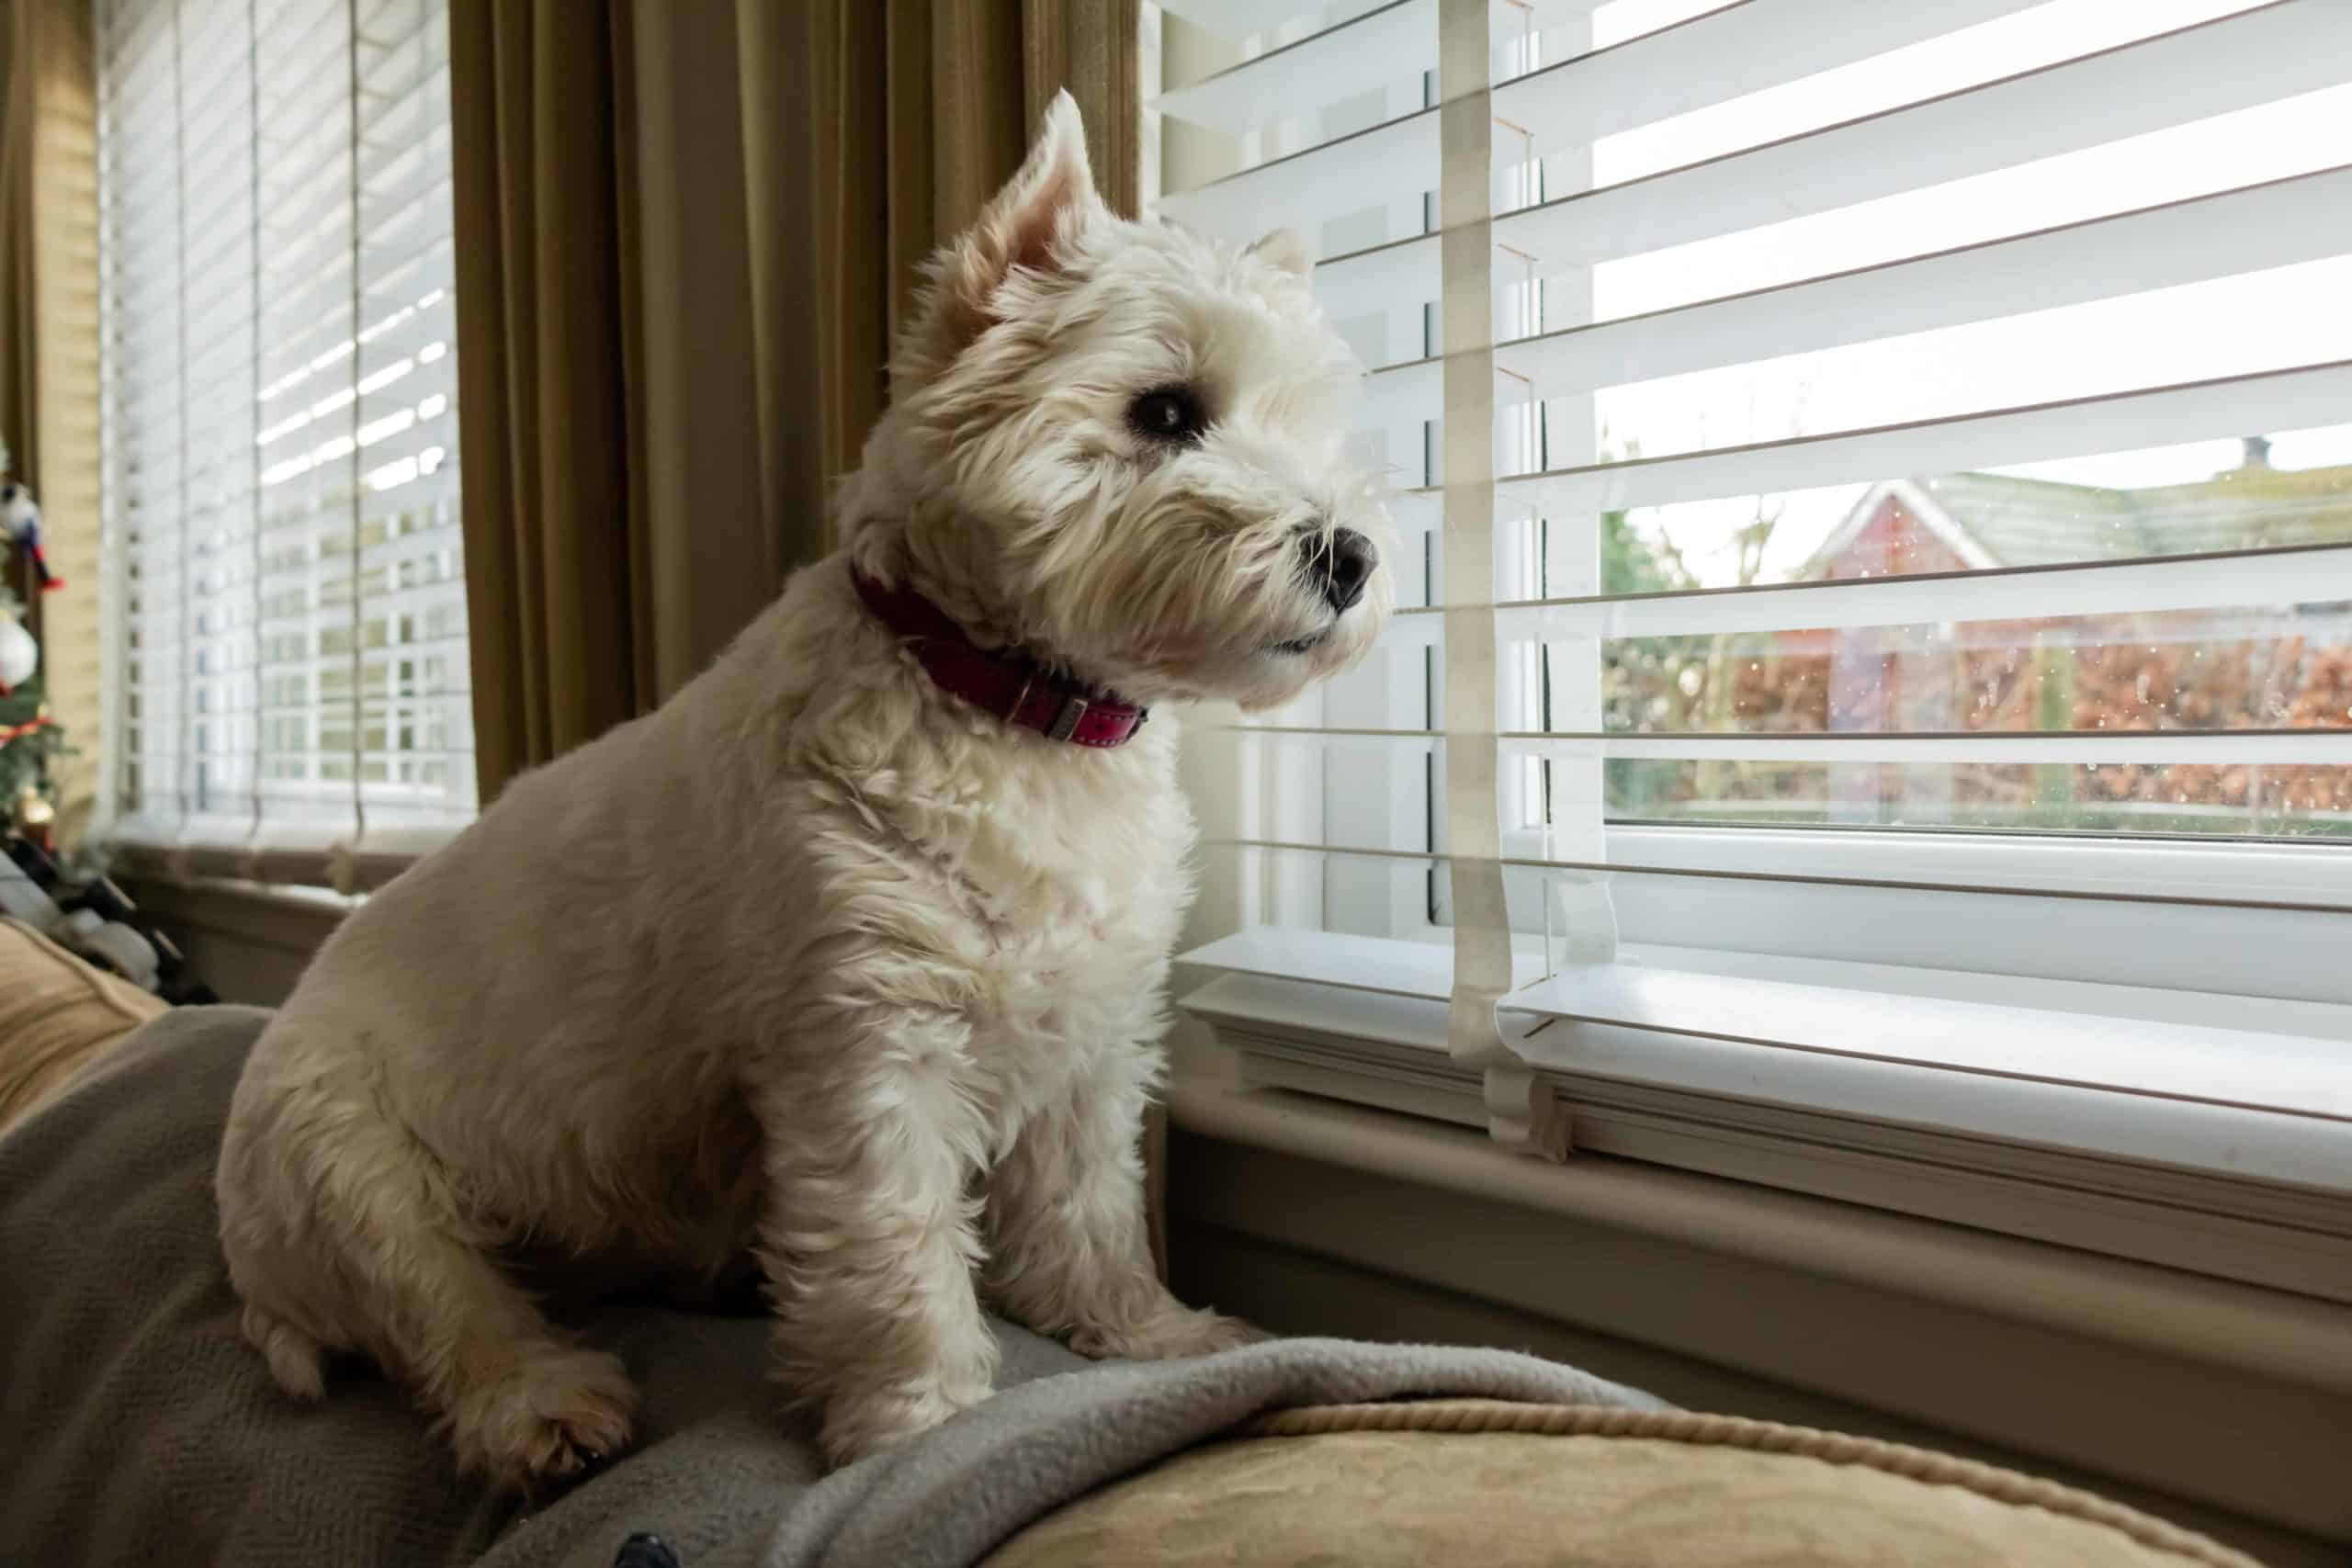 West Highland Terrier sits on couch looking out window. Choose pet-safe window coverings by avoiding cords and hanging drapes. Consider mini-blinds or wooden blinds to keep your dog safe.